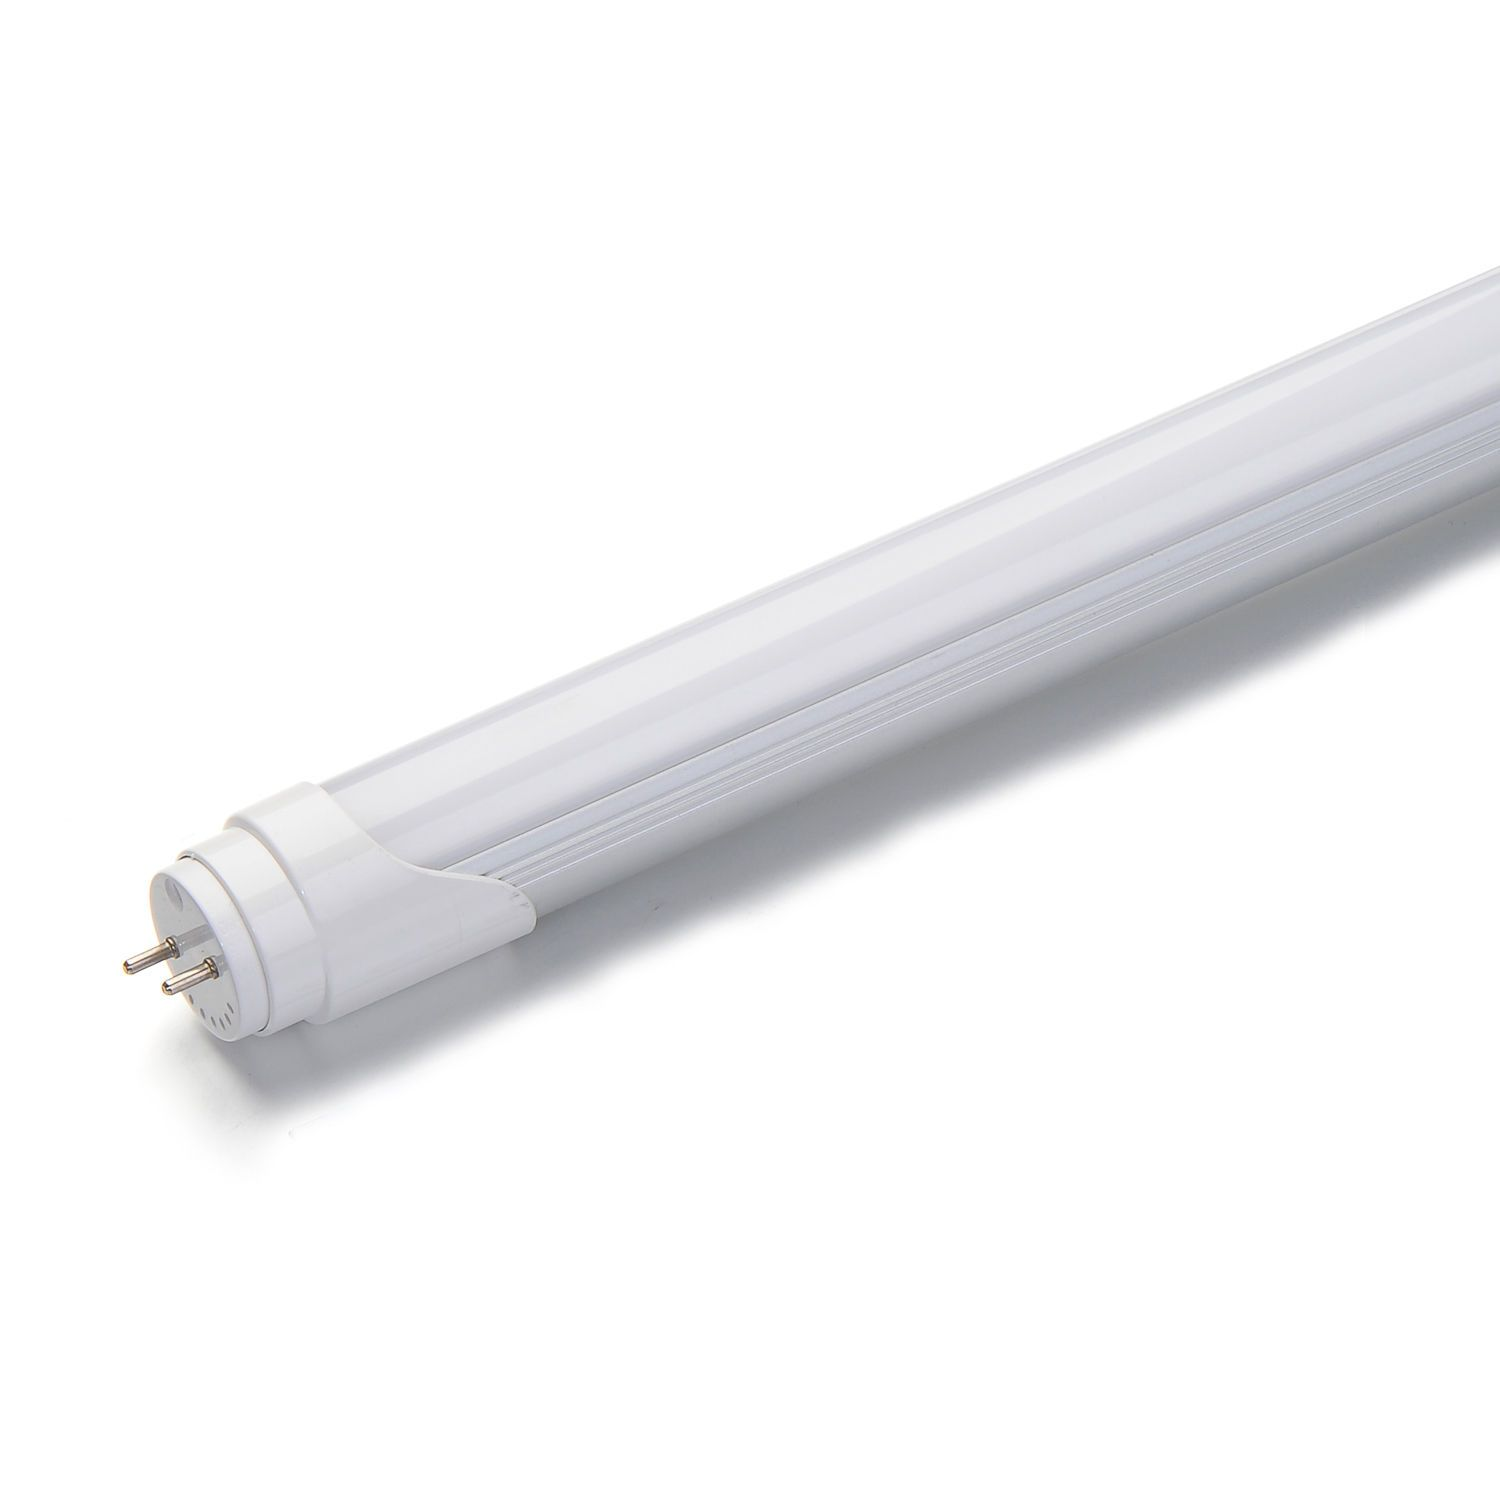 2u0027 foot led fluorescent replacement lights 800lm 7000k 1pack free shipping